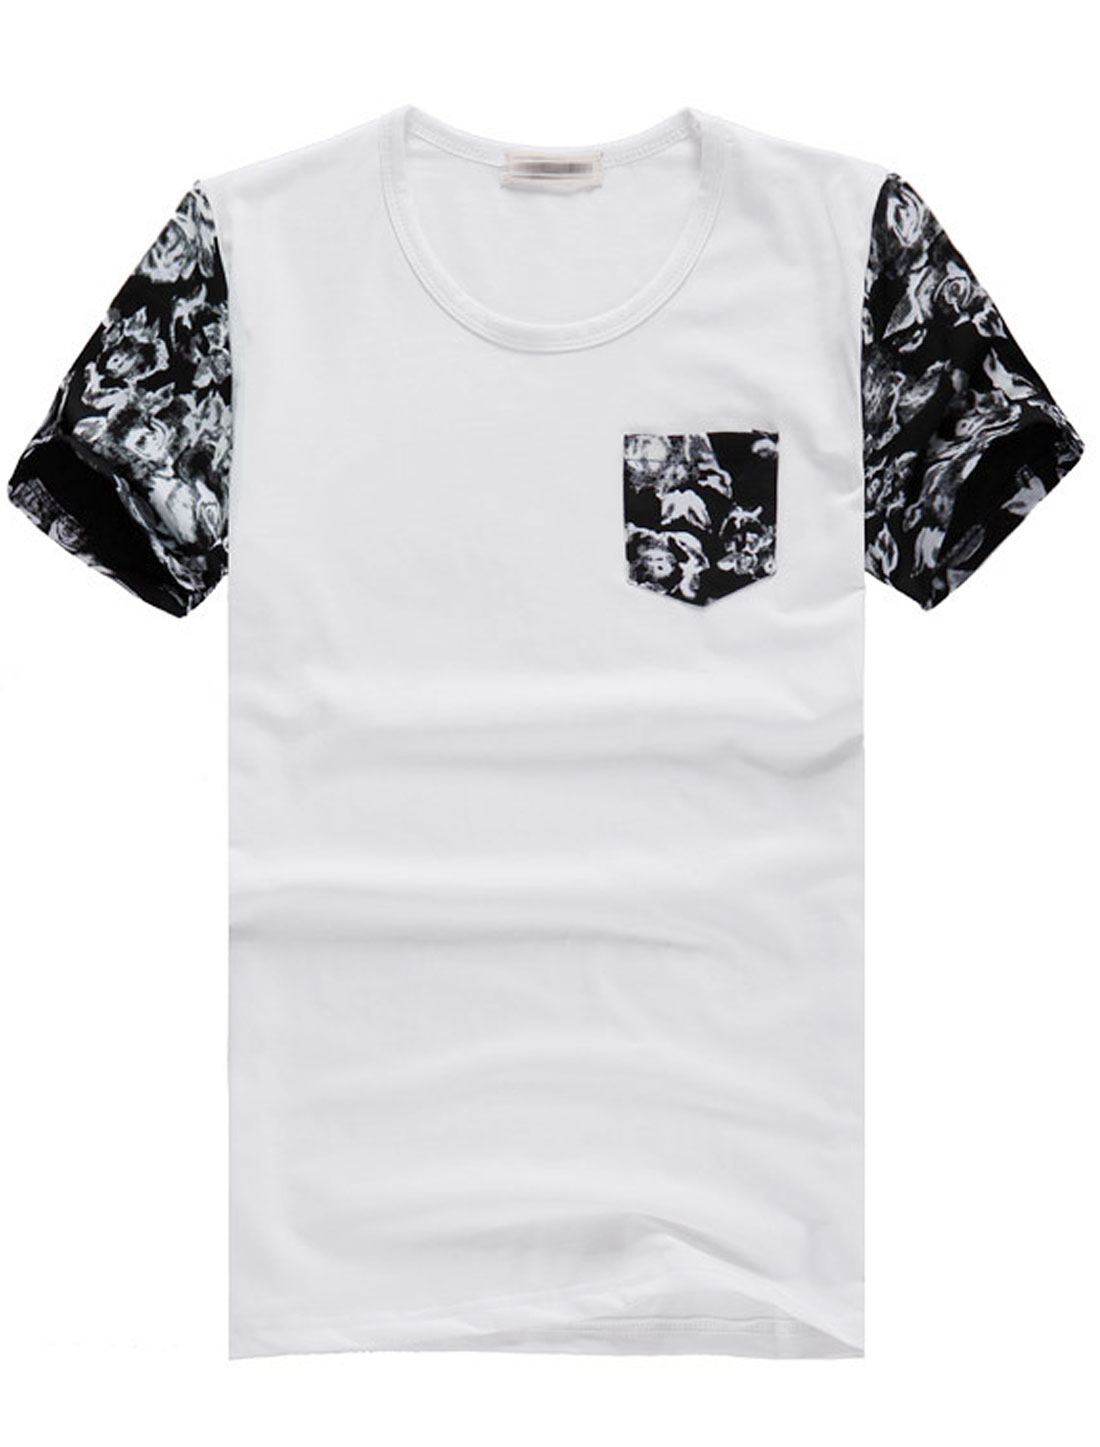 Men Short Sleeve Novelty Prints Splicing Design T-Shirt White S